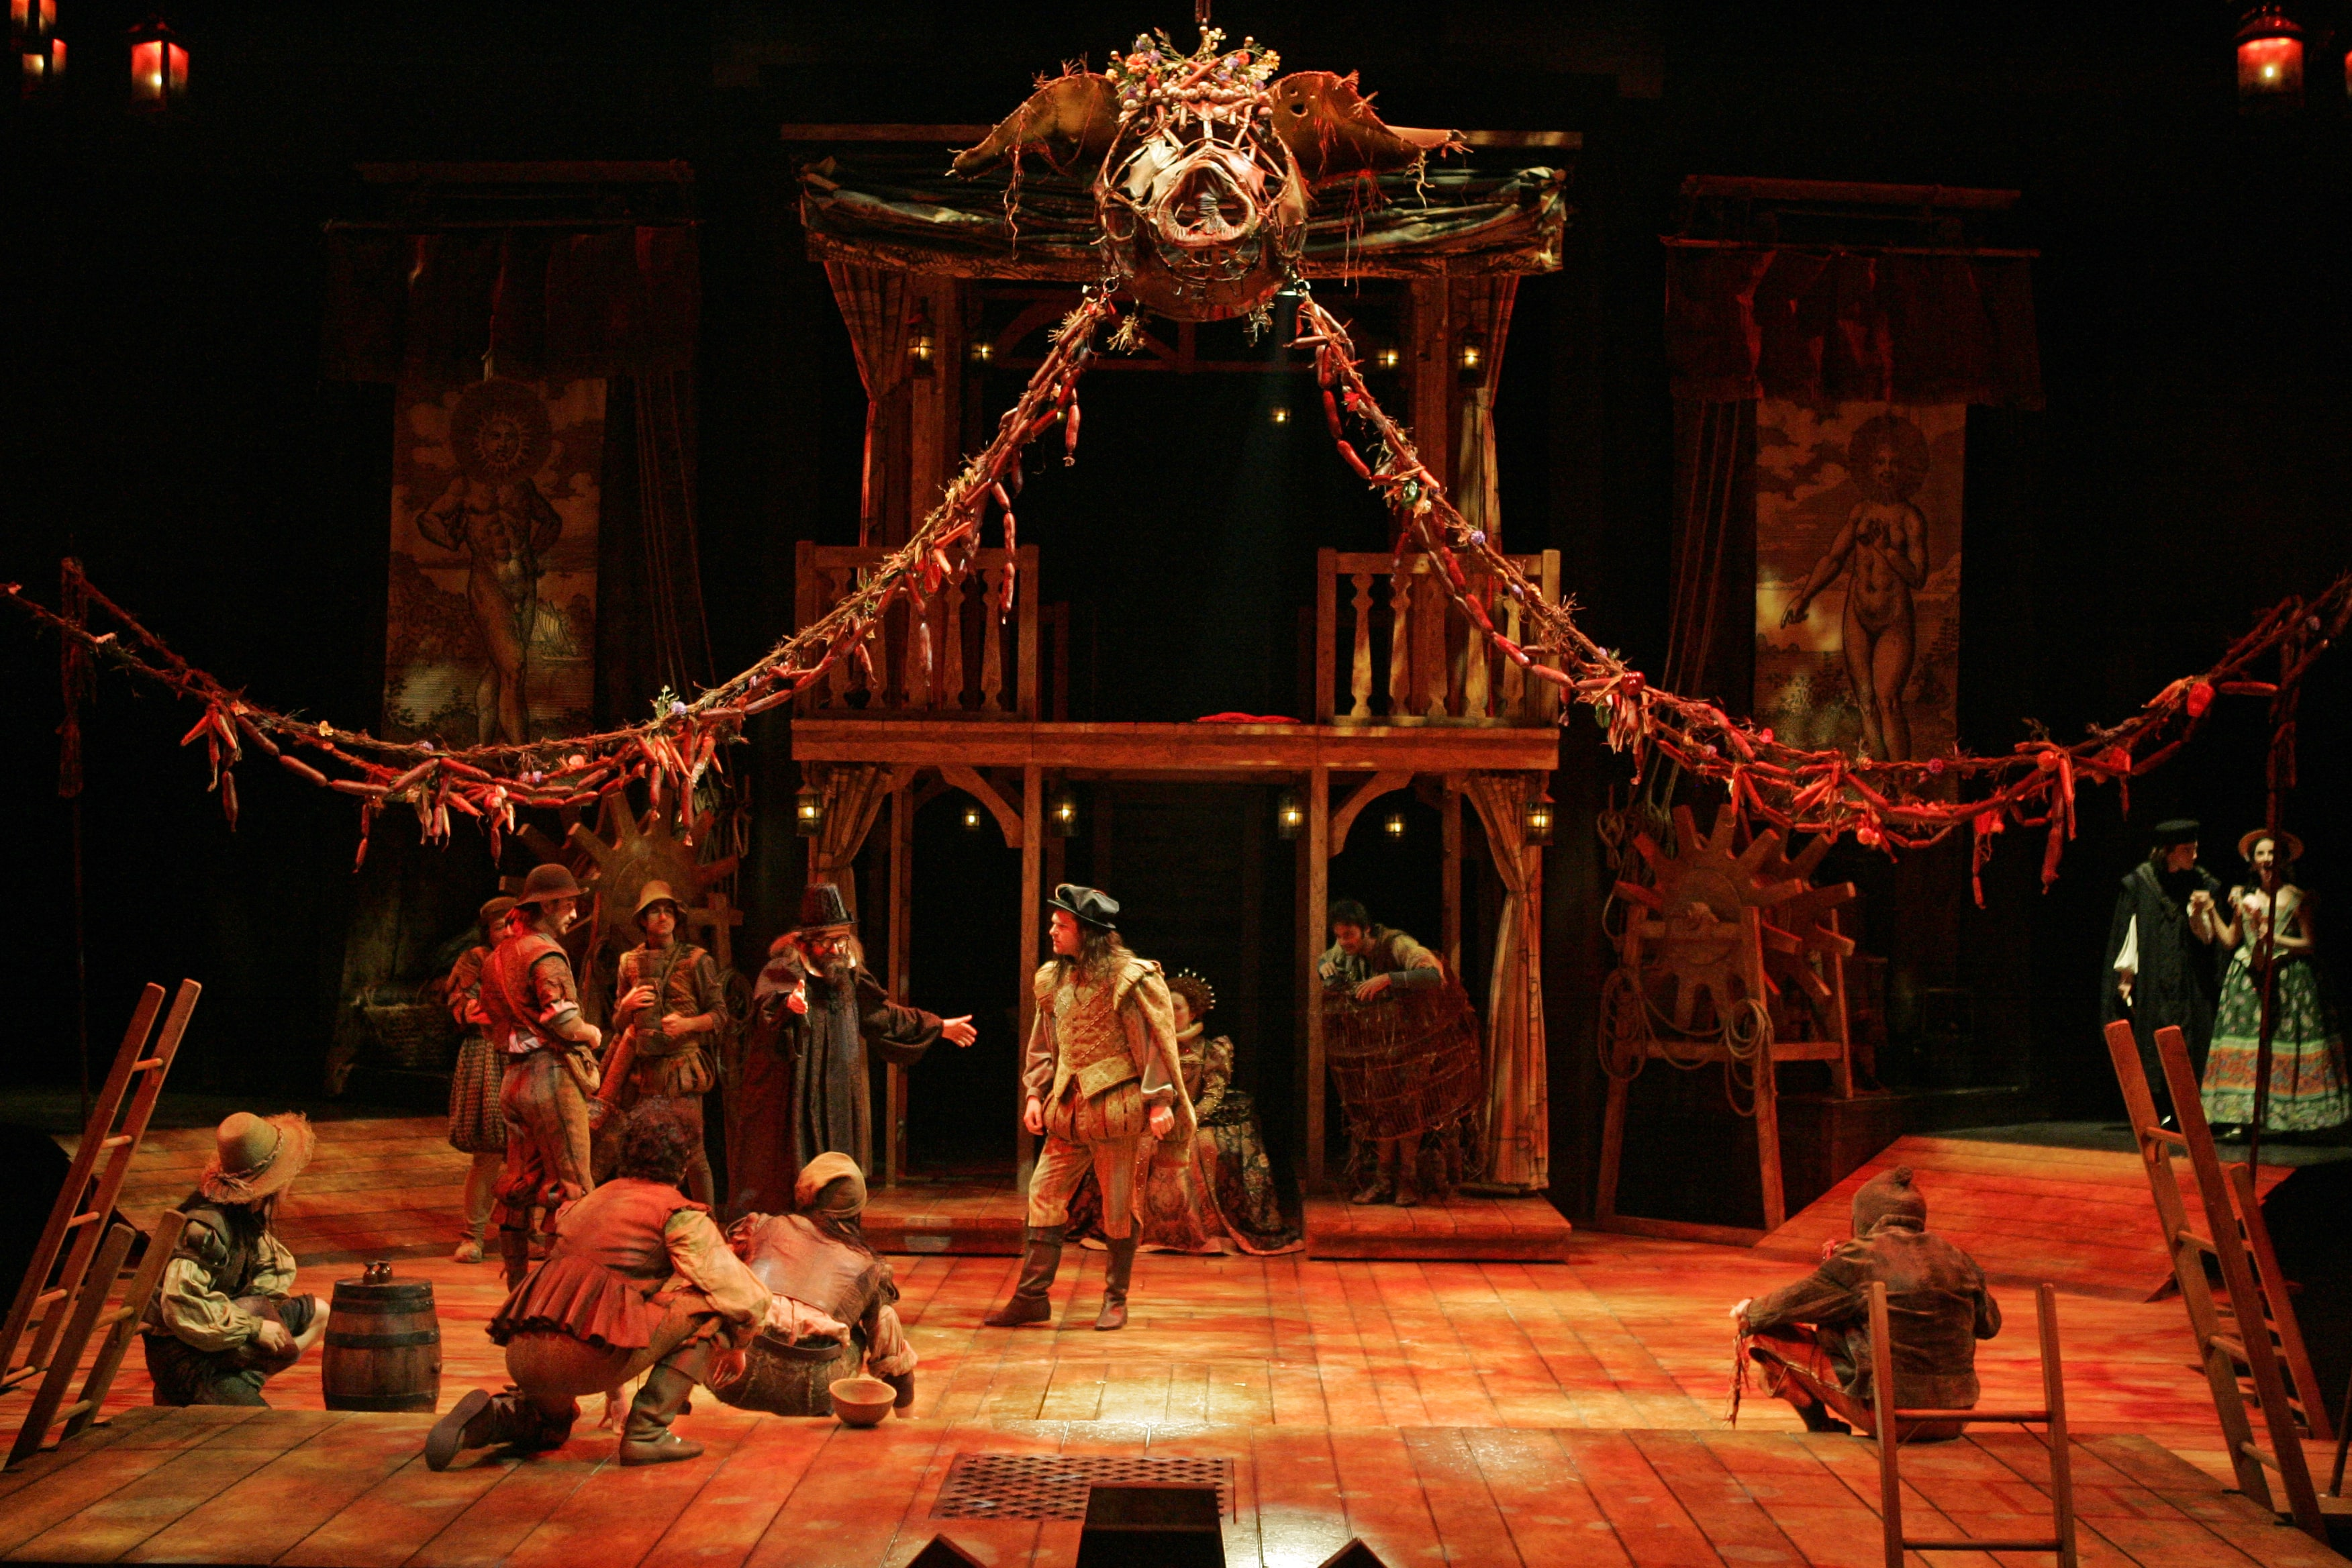 Company of theatrical players carouse under canopy of decorative pig and sausage garlands, bathed in red light.